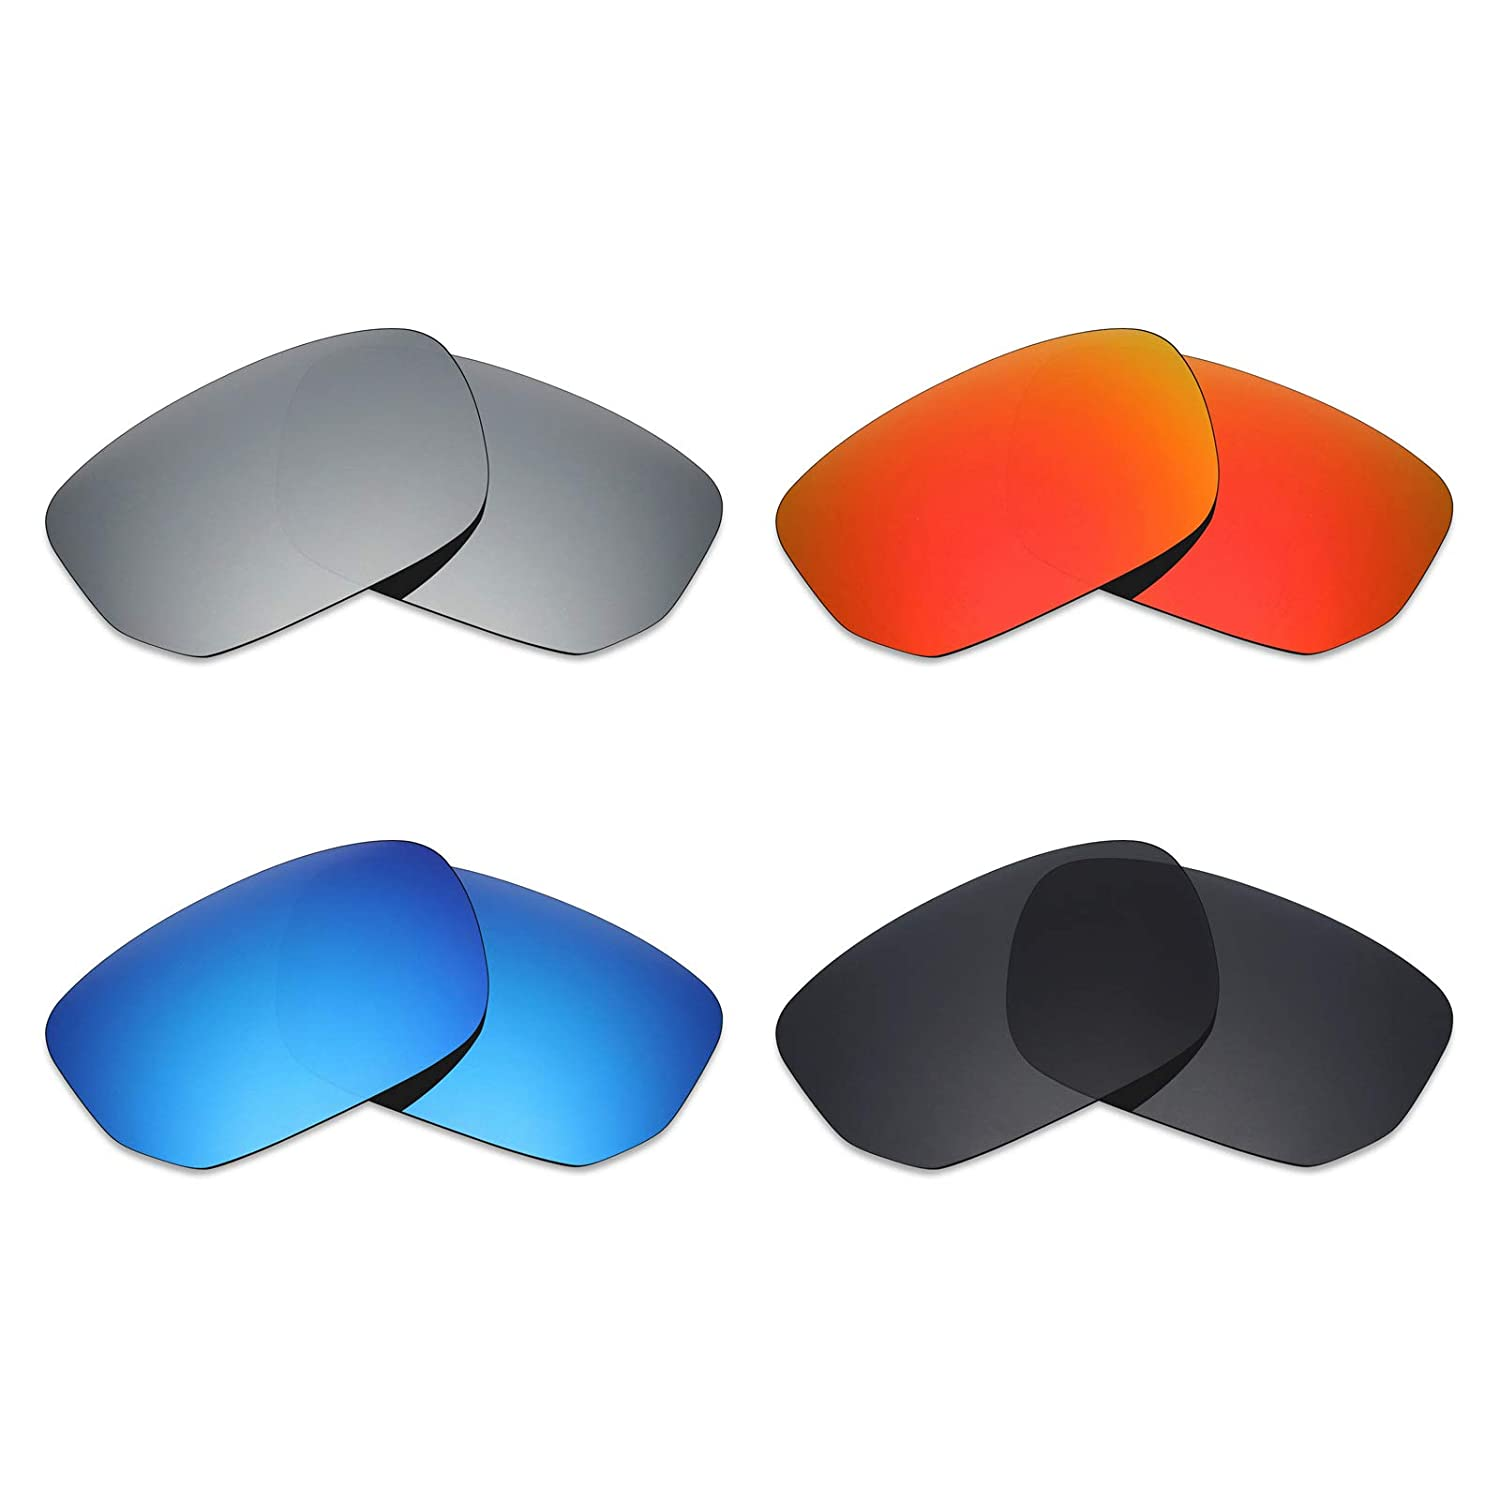 02537212d4 Amazon.com   Mryok 4 Pair Polarized Replacement Lenses for Oakley Style  Switch Sunglass - Stealth Black Fire Red Ice Blue Silver Titanium   Sports    ...